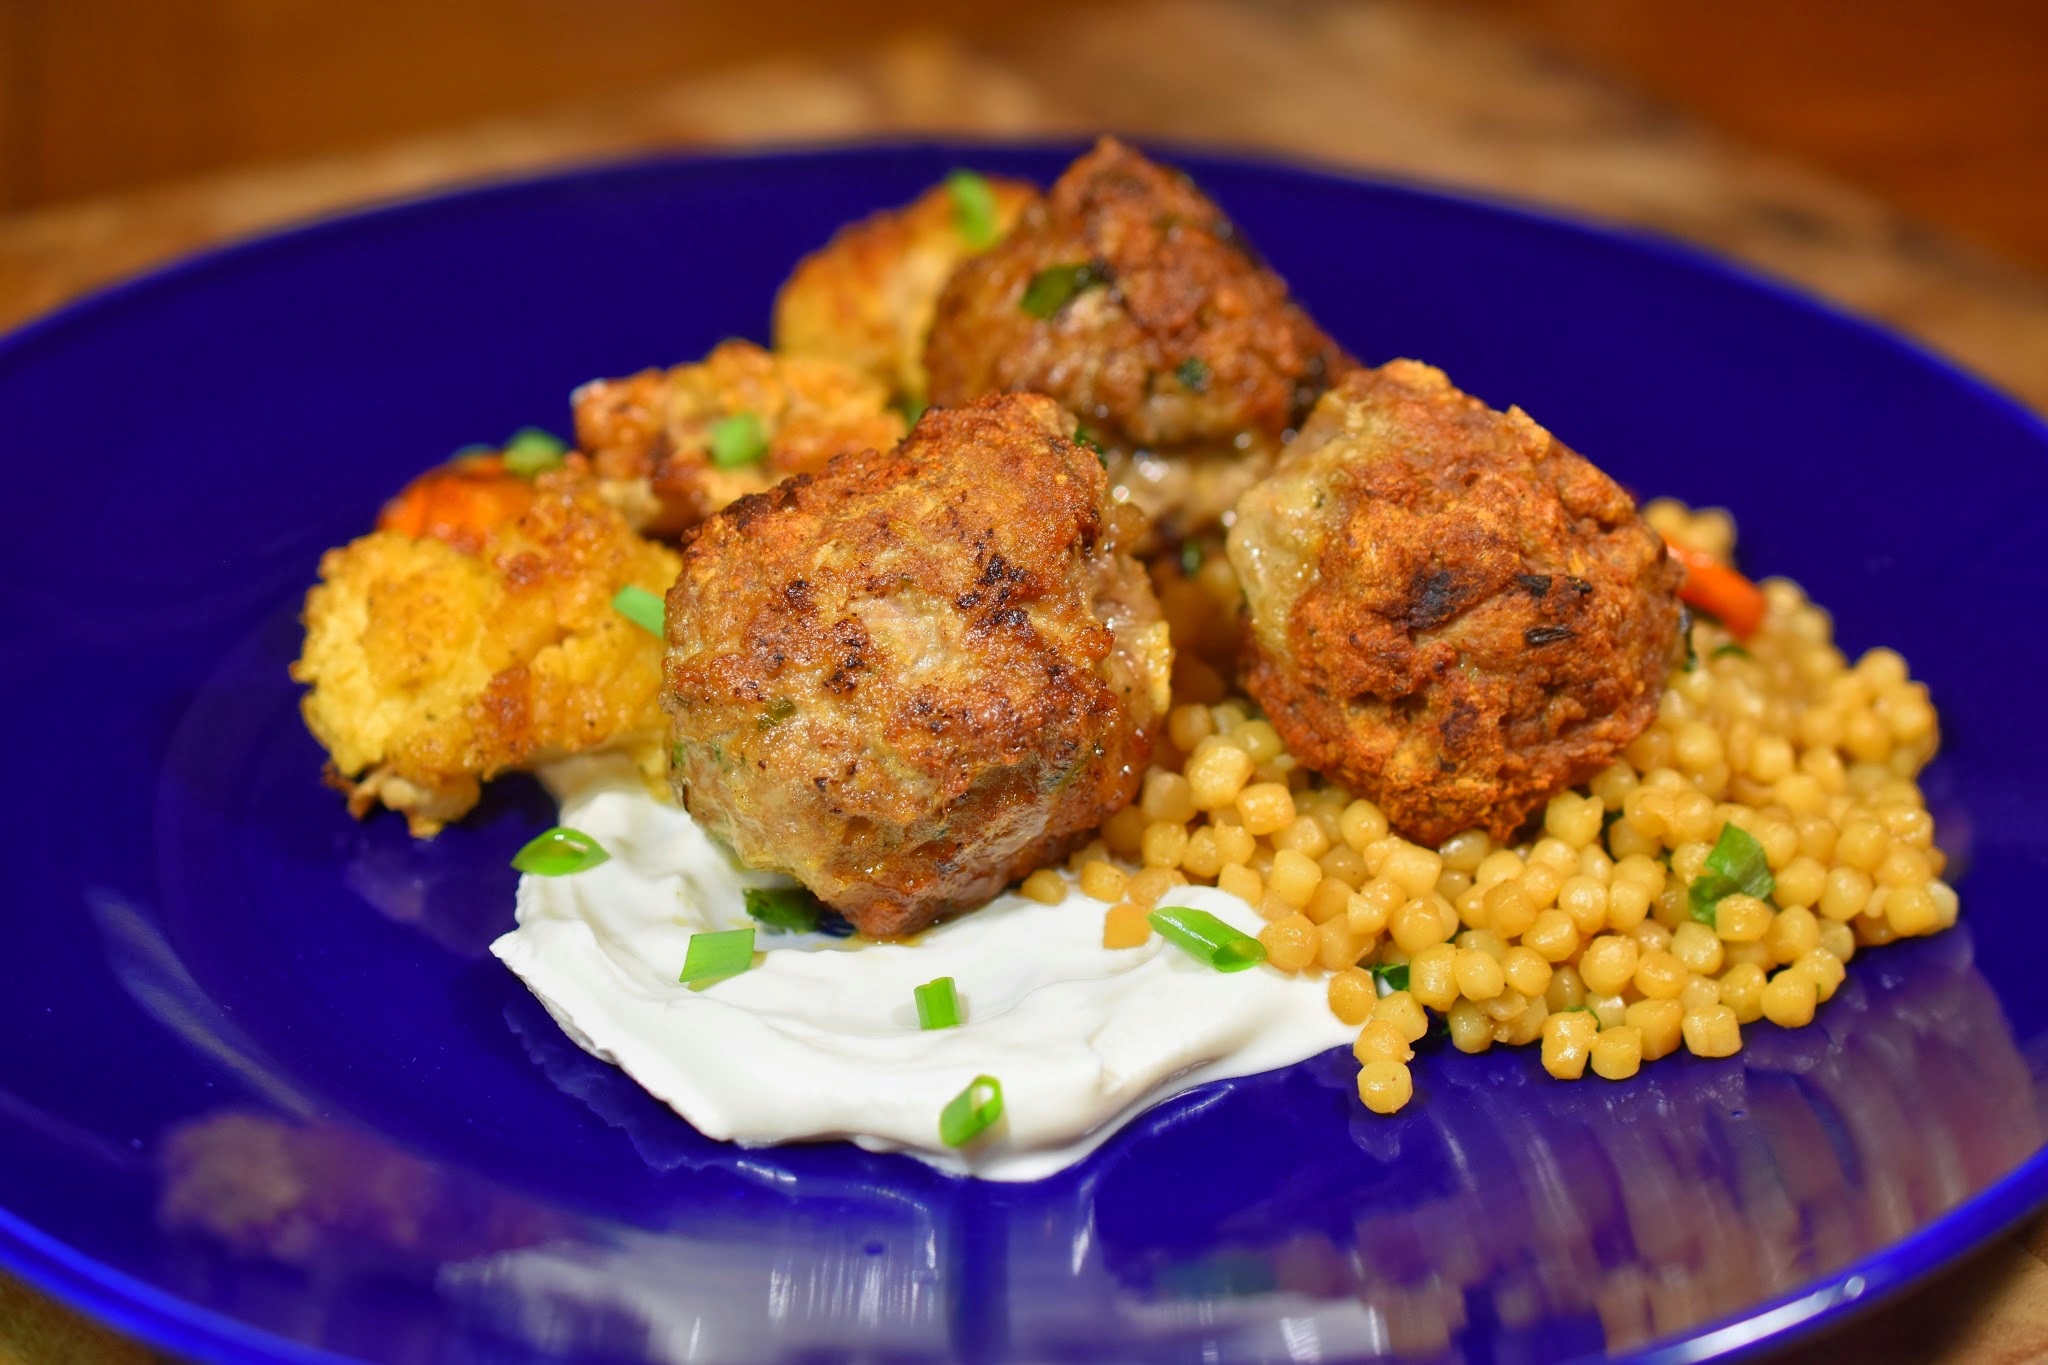 Herby Lamb Meatballs with Israeli Couscous and Za'atar Spiced Root Vegetables